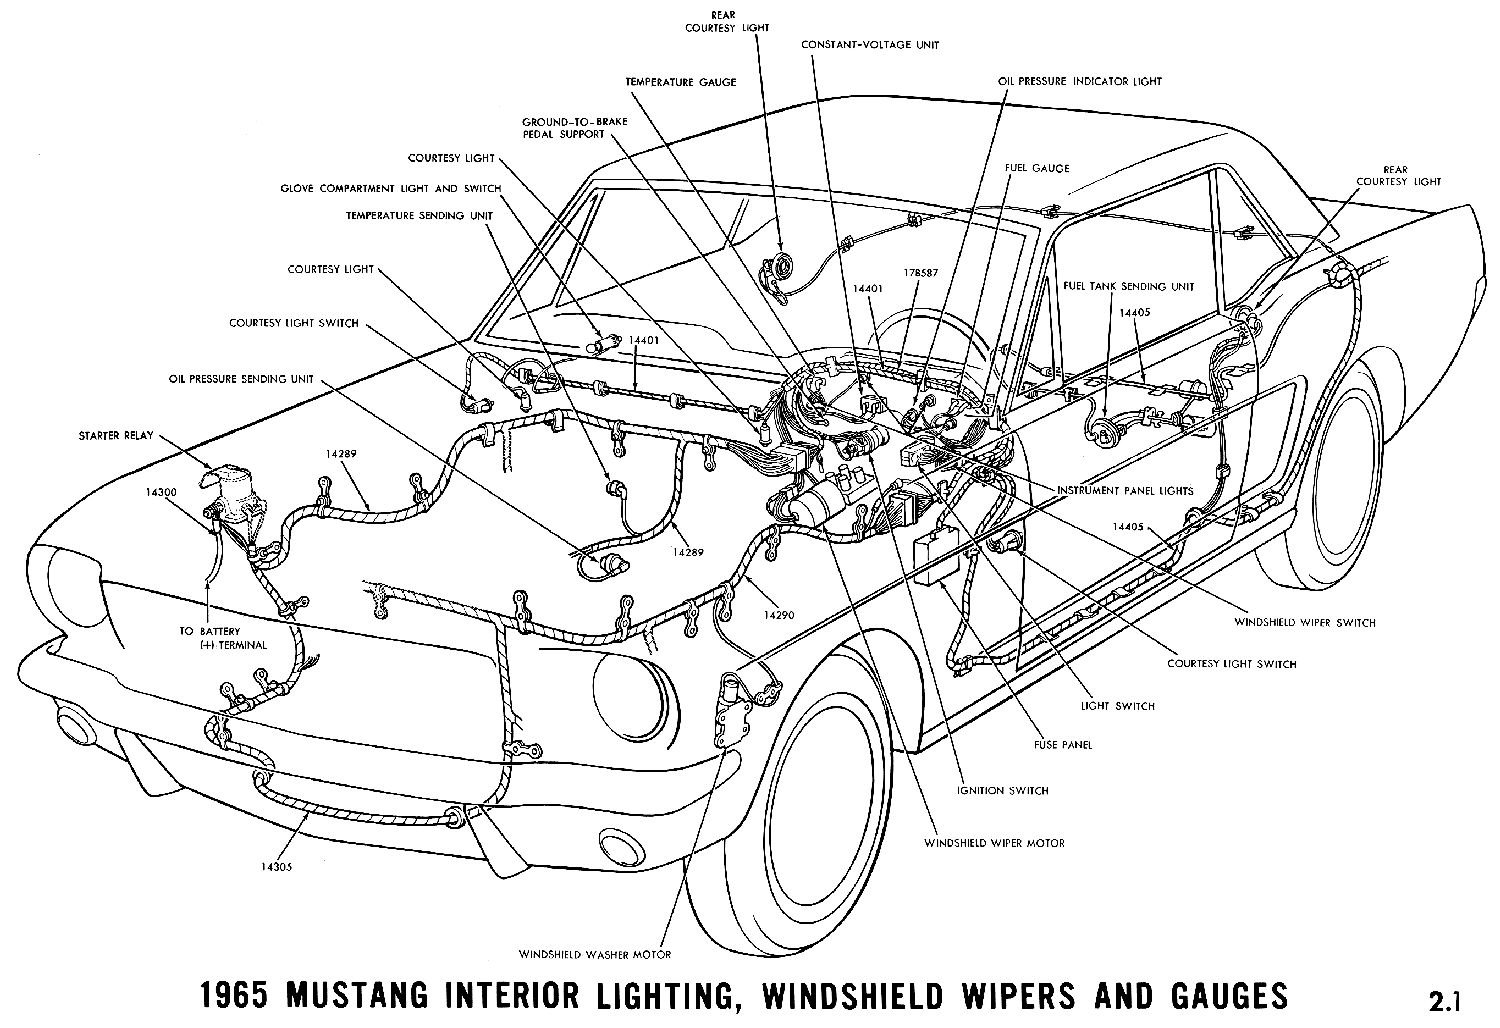 wiring diagram for 1971 mustang the wiring diagram 1971 chevelle wiring diagram car wiring wiring diagram